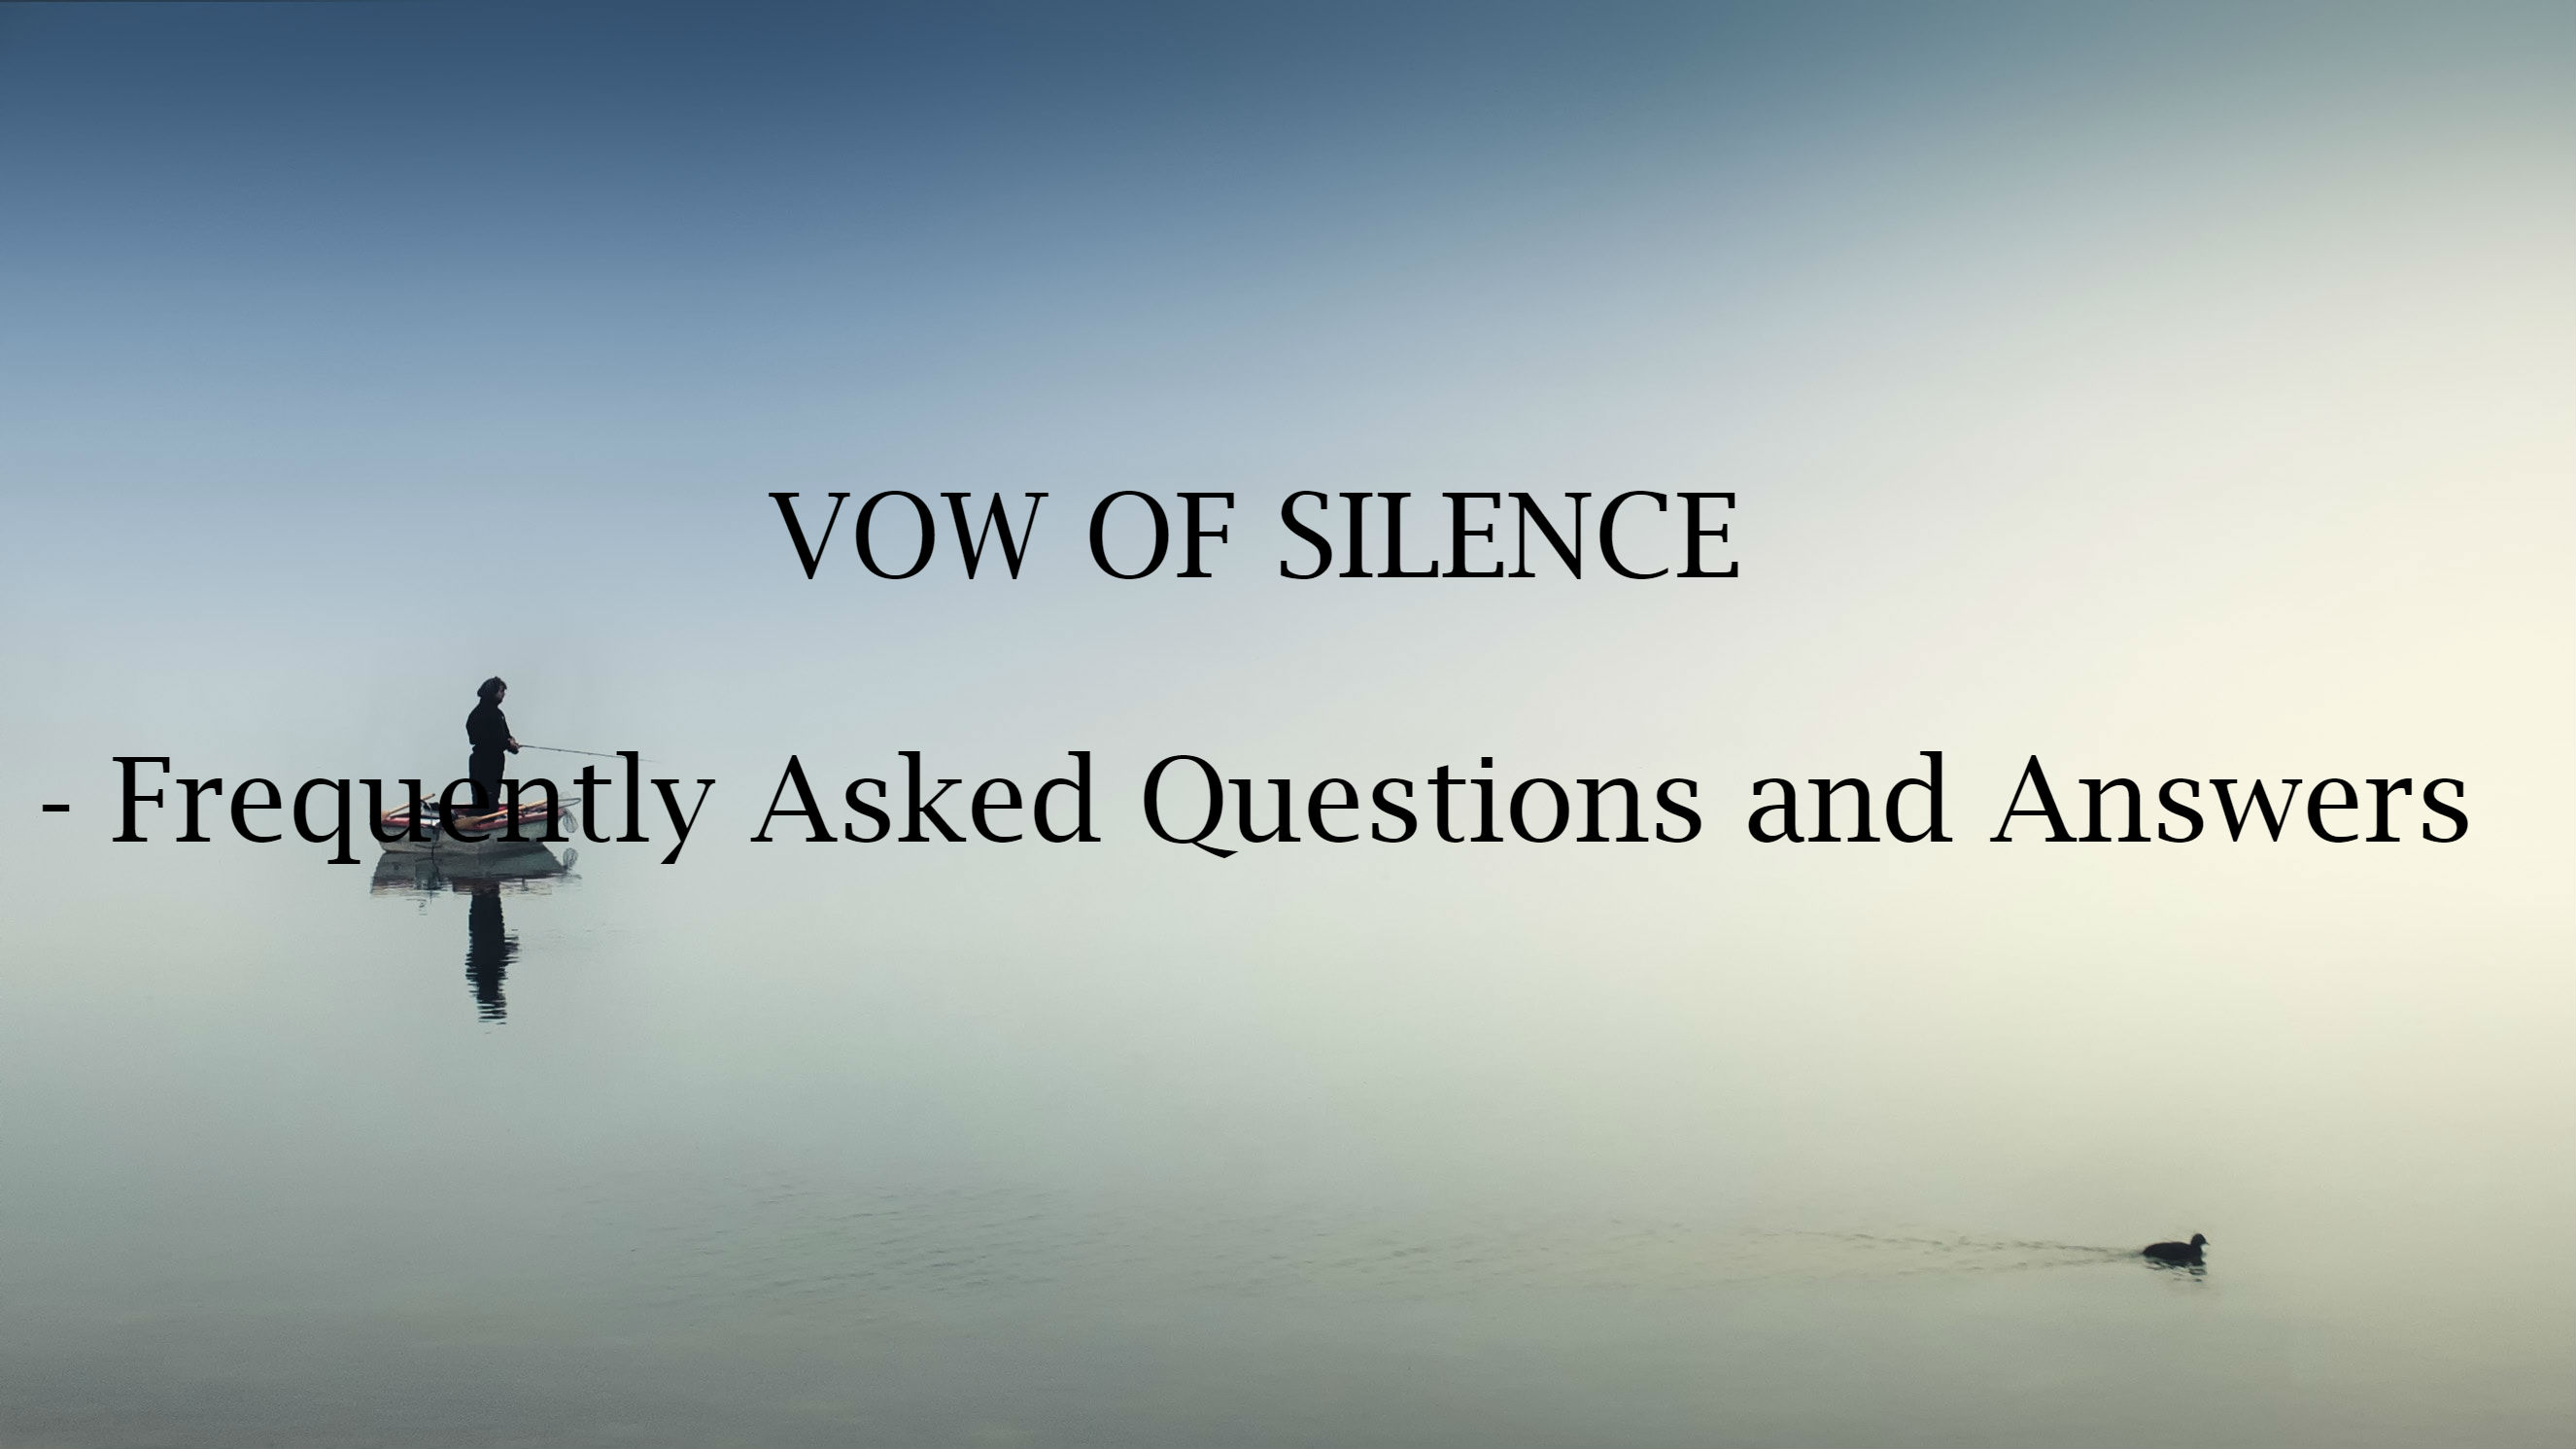 VOW OF SILENCE - Frequently Asked Questions and Answers